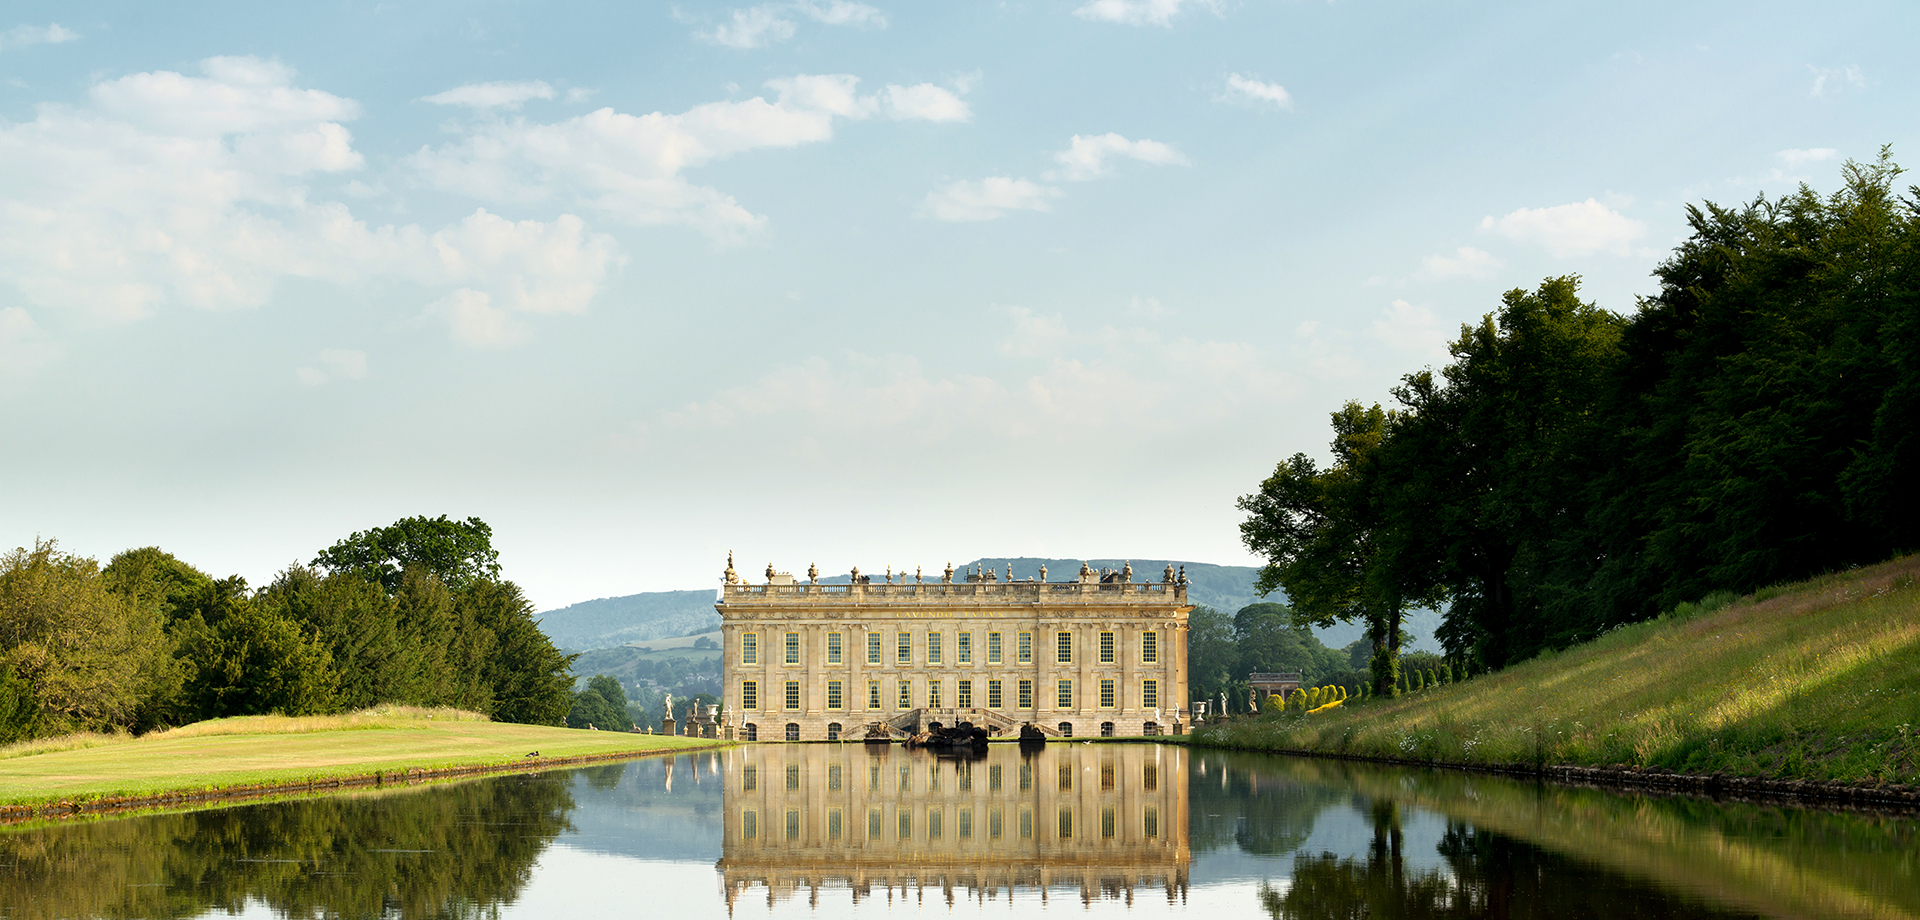 See Chatsworth in a Different Light - 4th to 7th October 2014